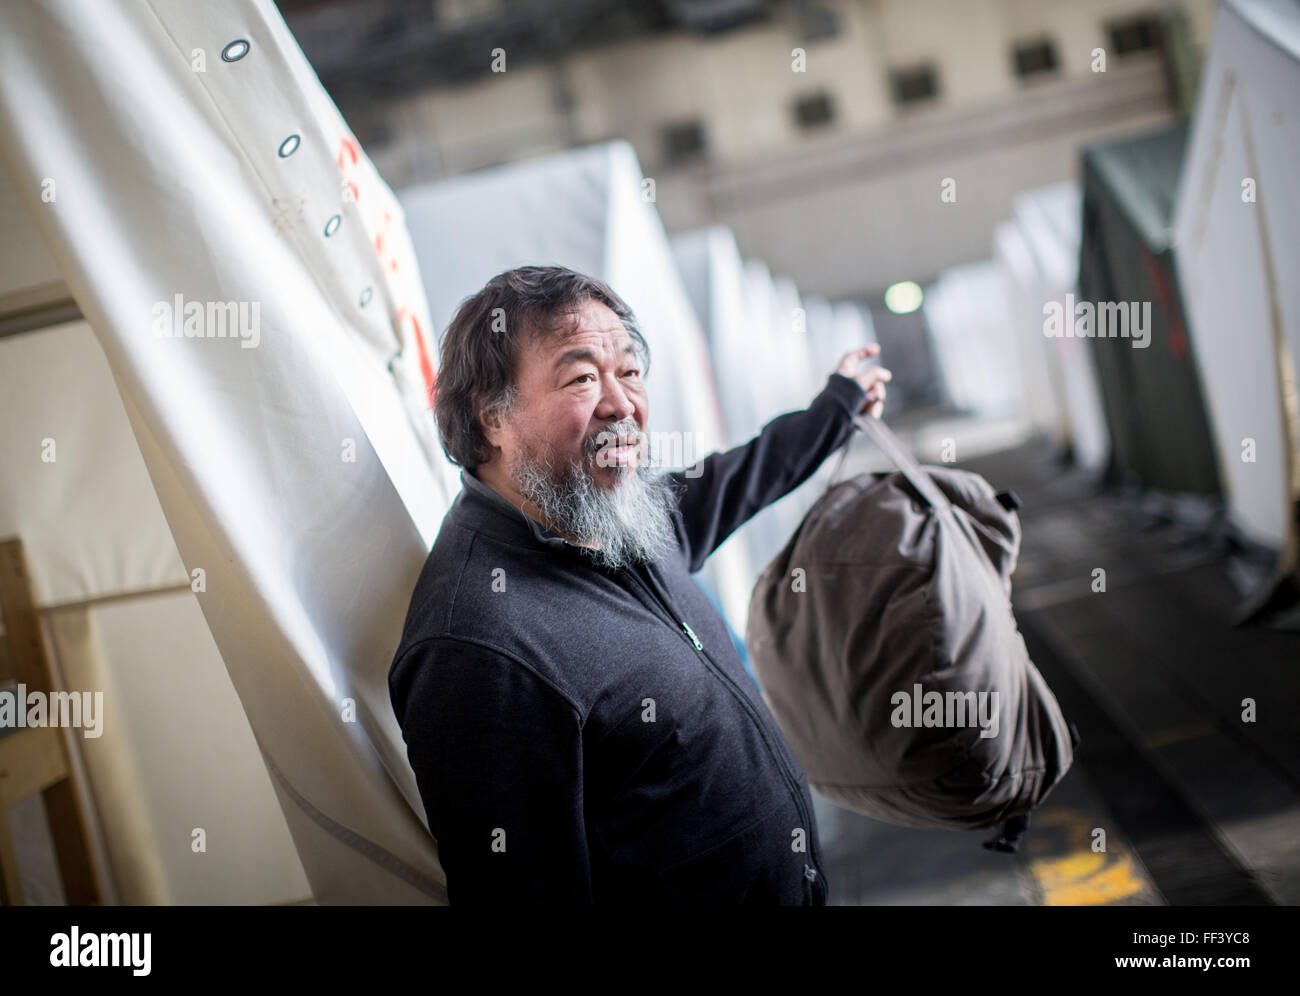 Berlin, Germany. 10th Feb, 2016. Chinese artist Ai Weiwei talks to his film crew in the refugee emergency shelter - Stock Image